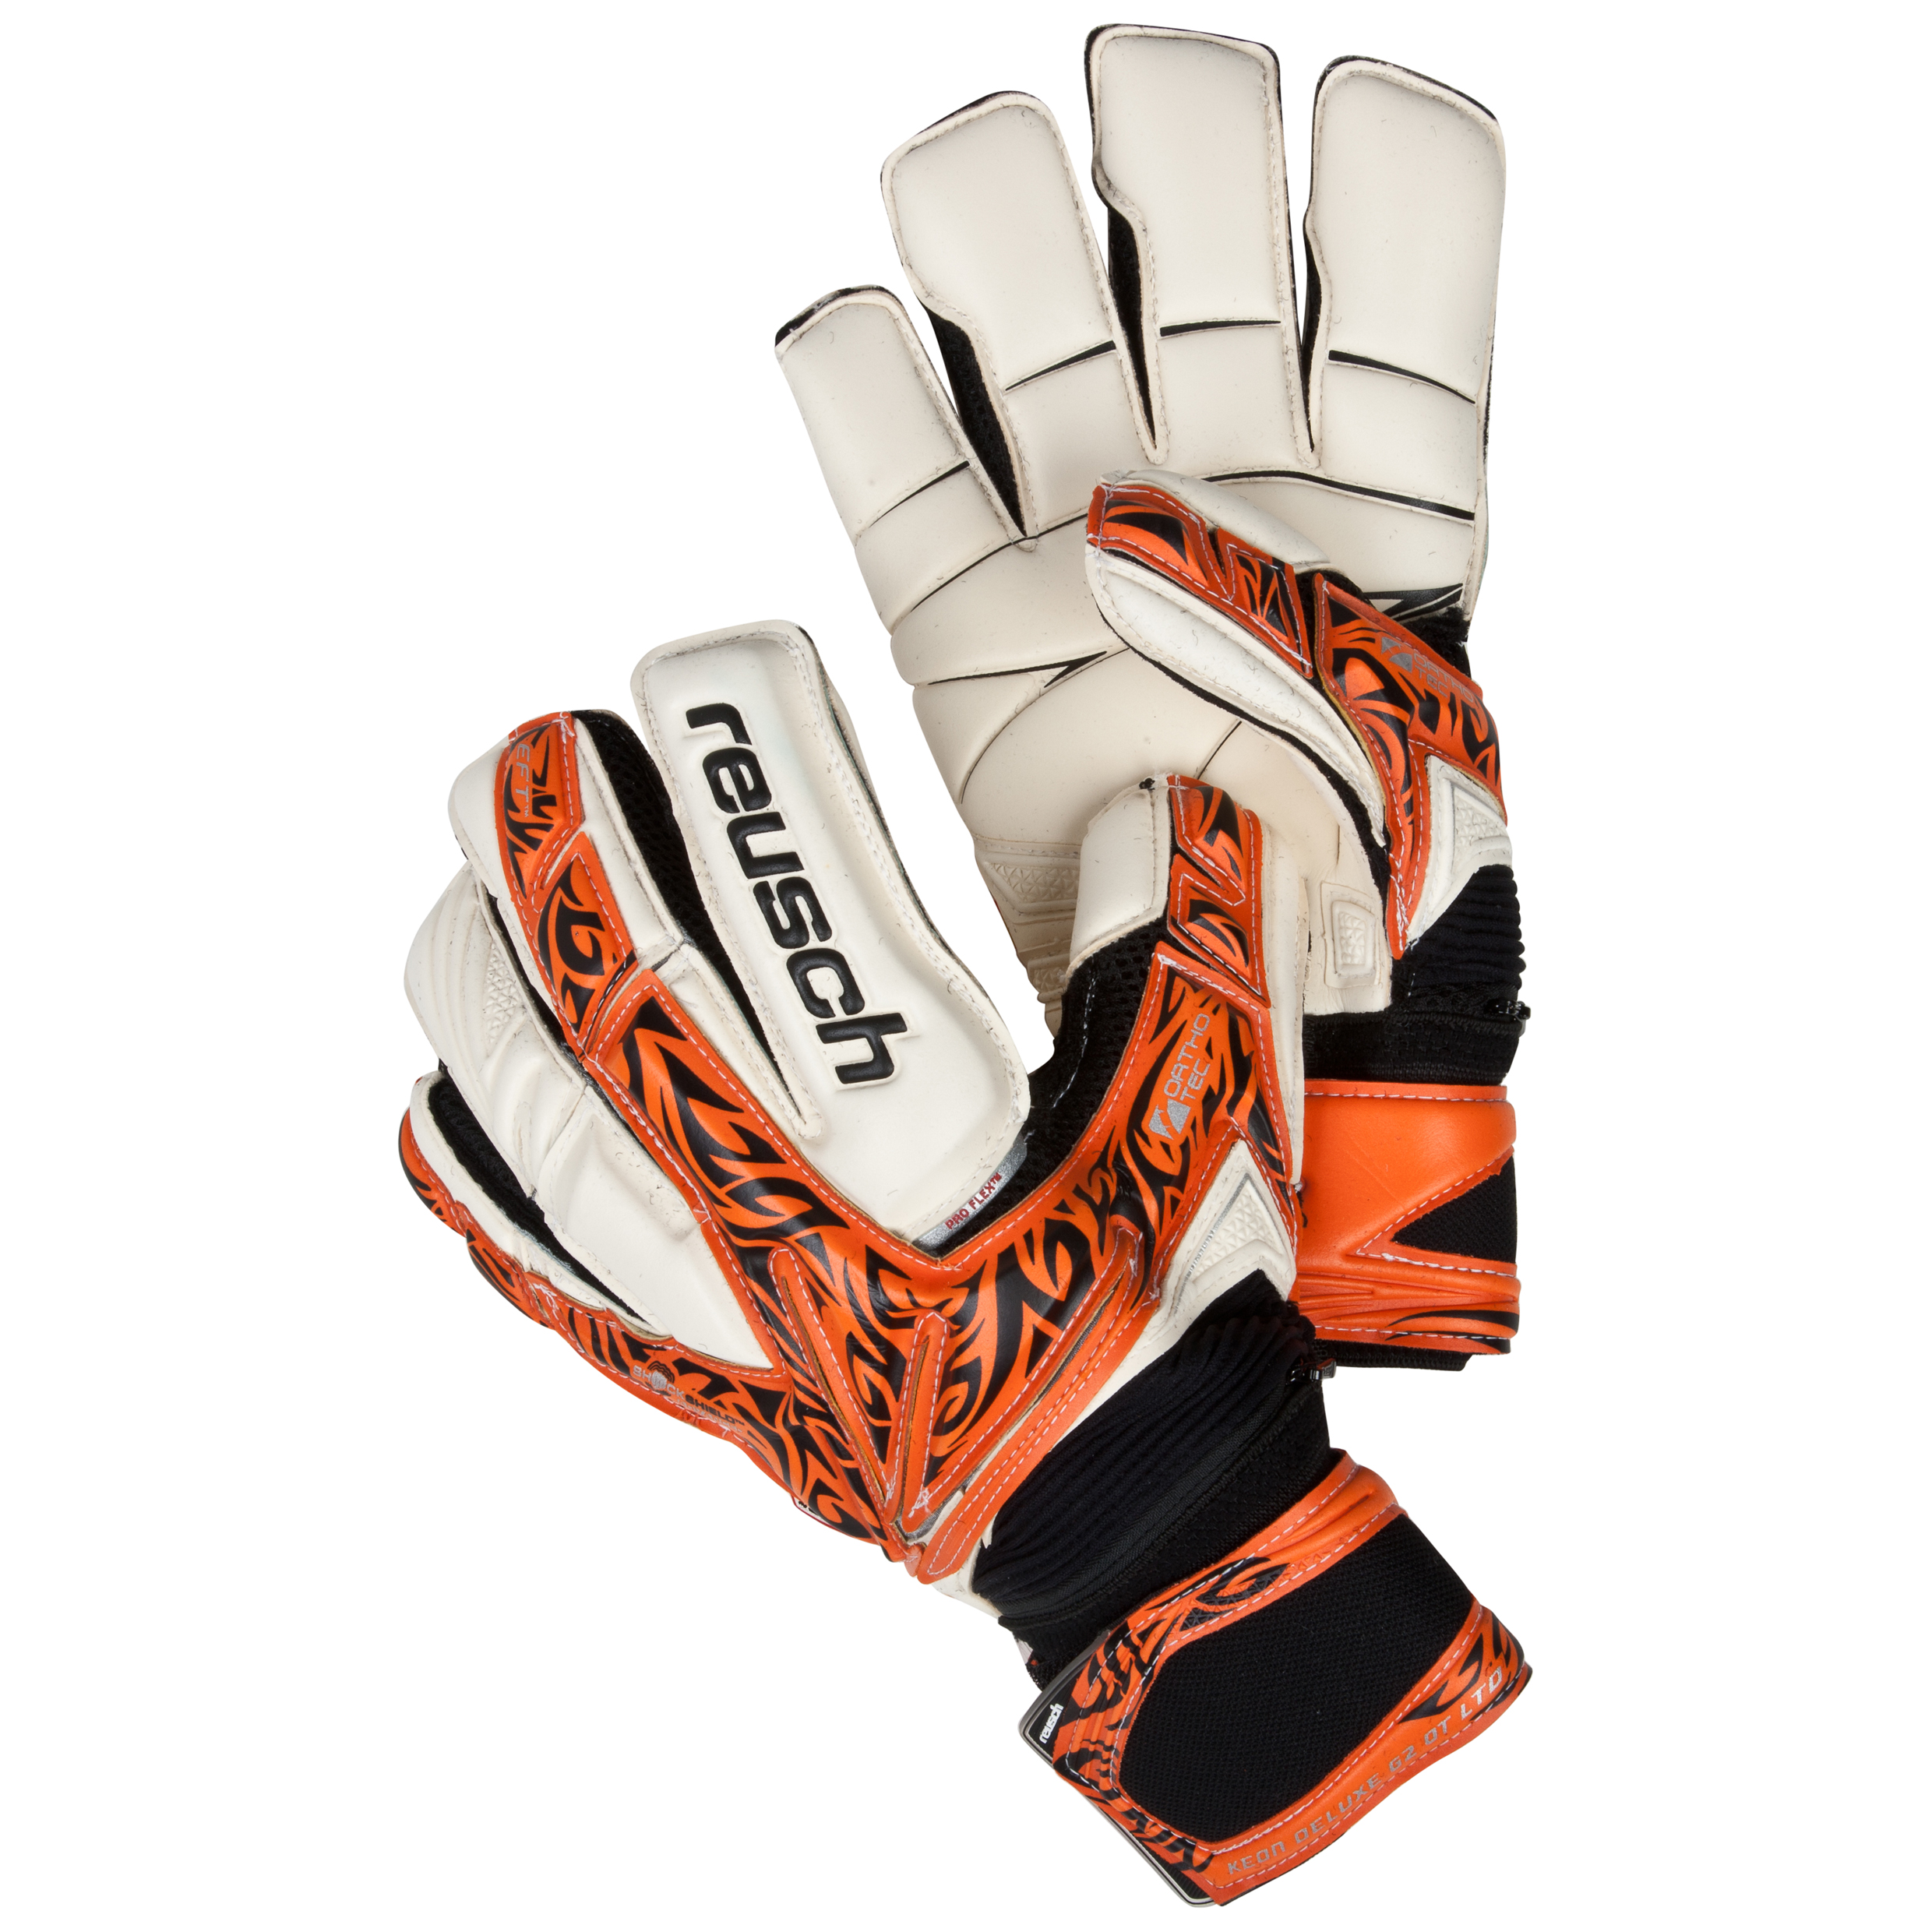 Reusch Keon Deluxe G2 Ortho-Tec LTD Goalkeeper Gloves